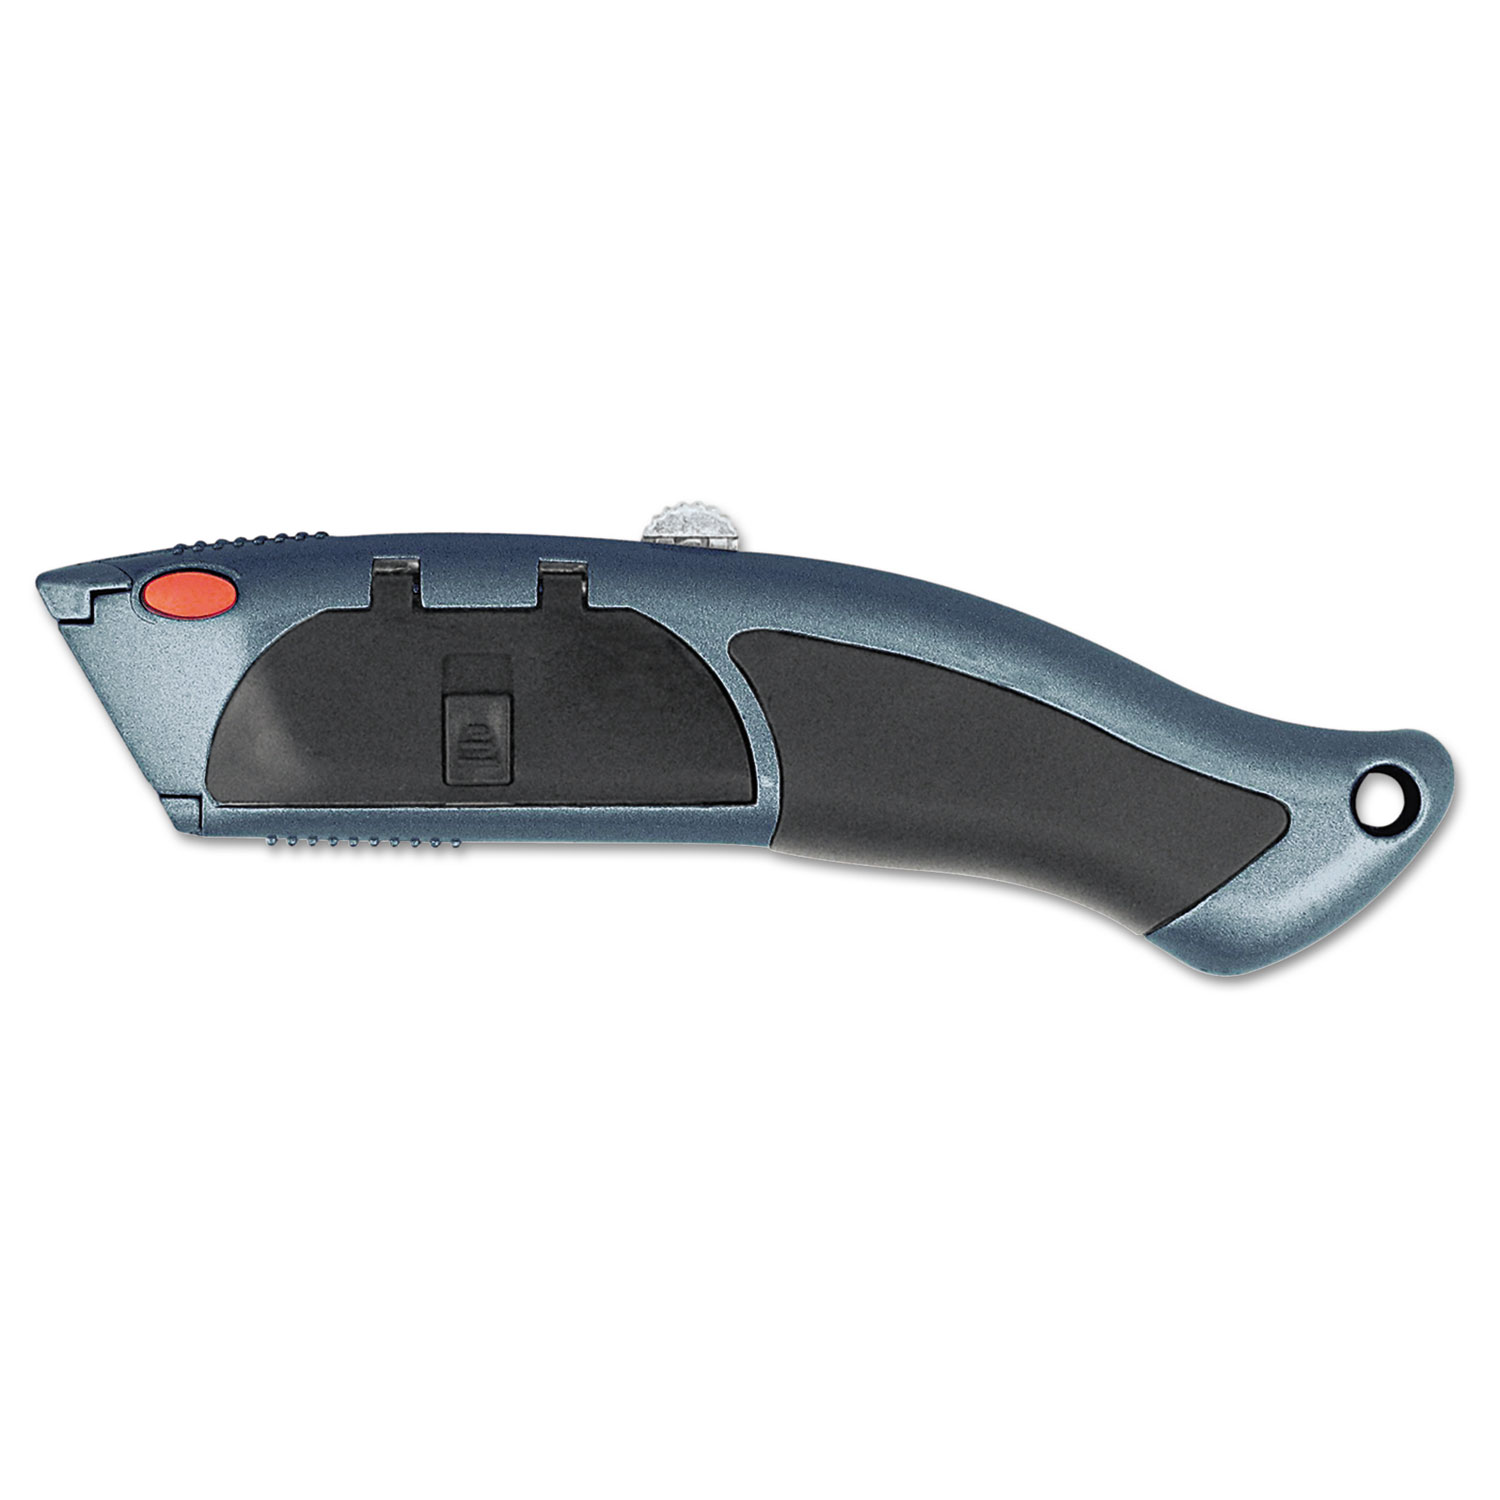 Auto-Load Razor Blade Utility Knife with Ten Blades